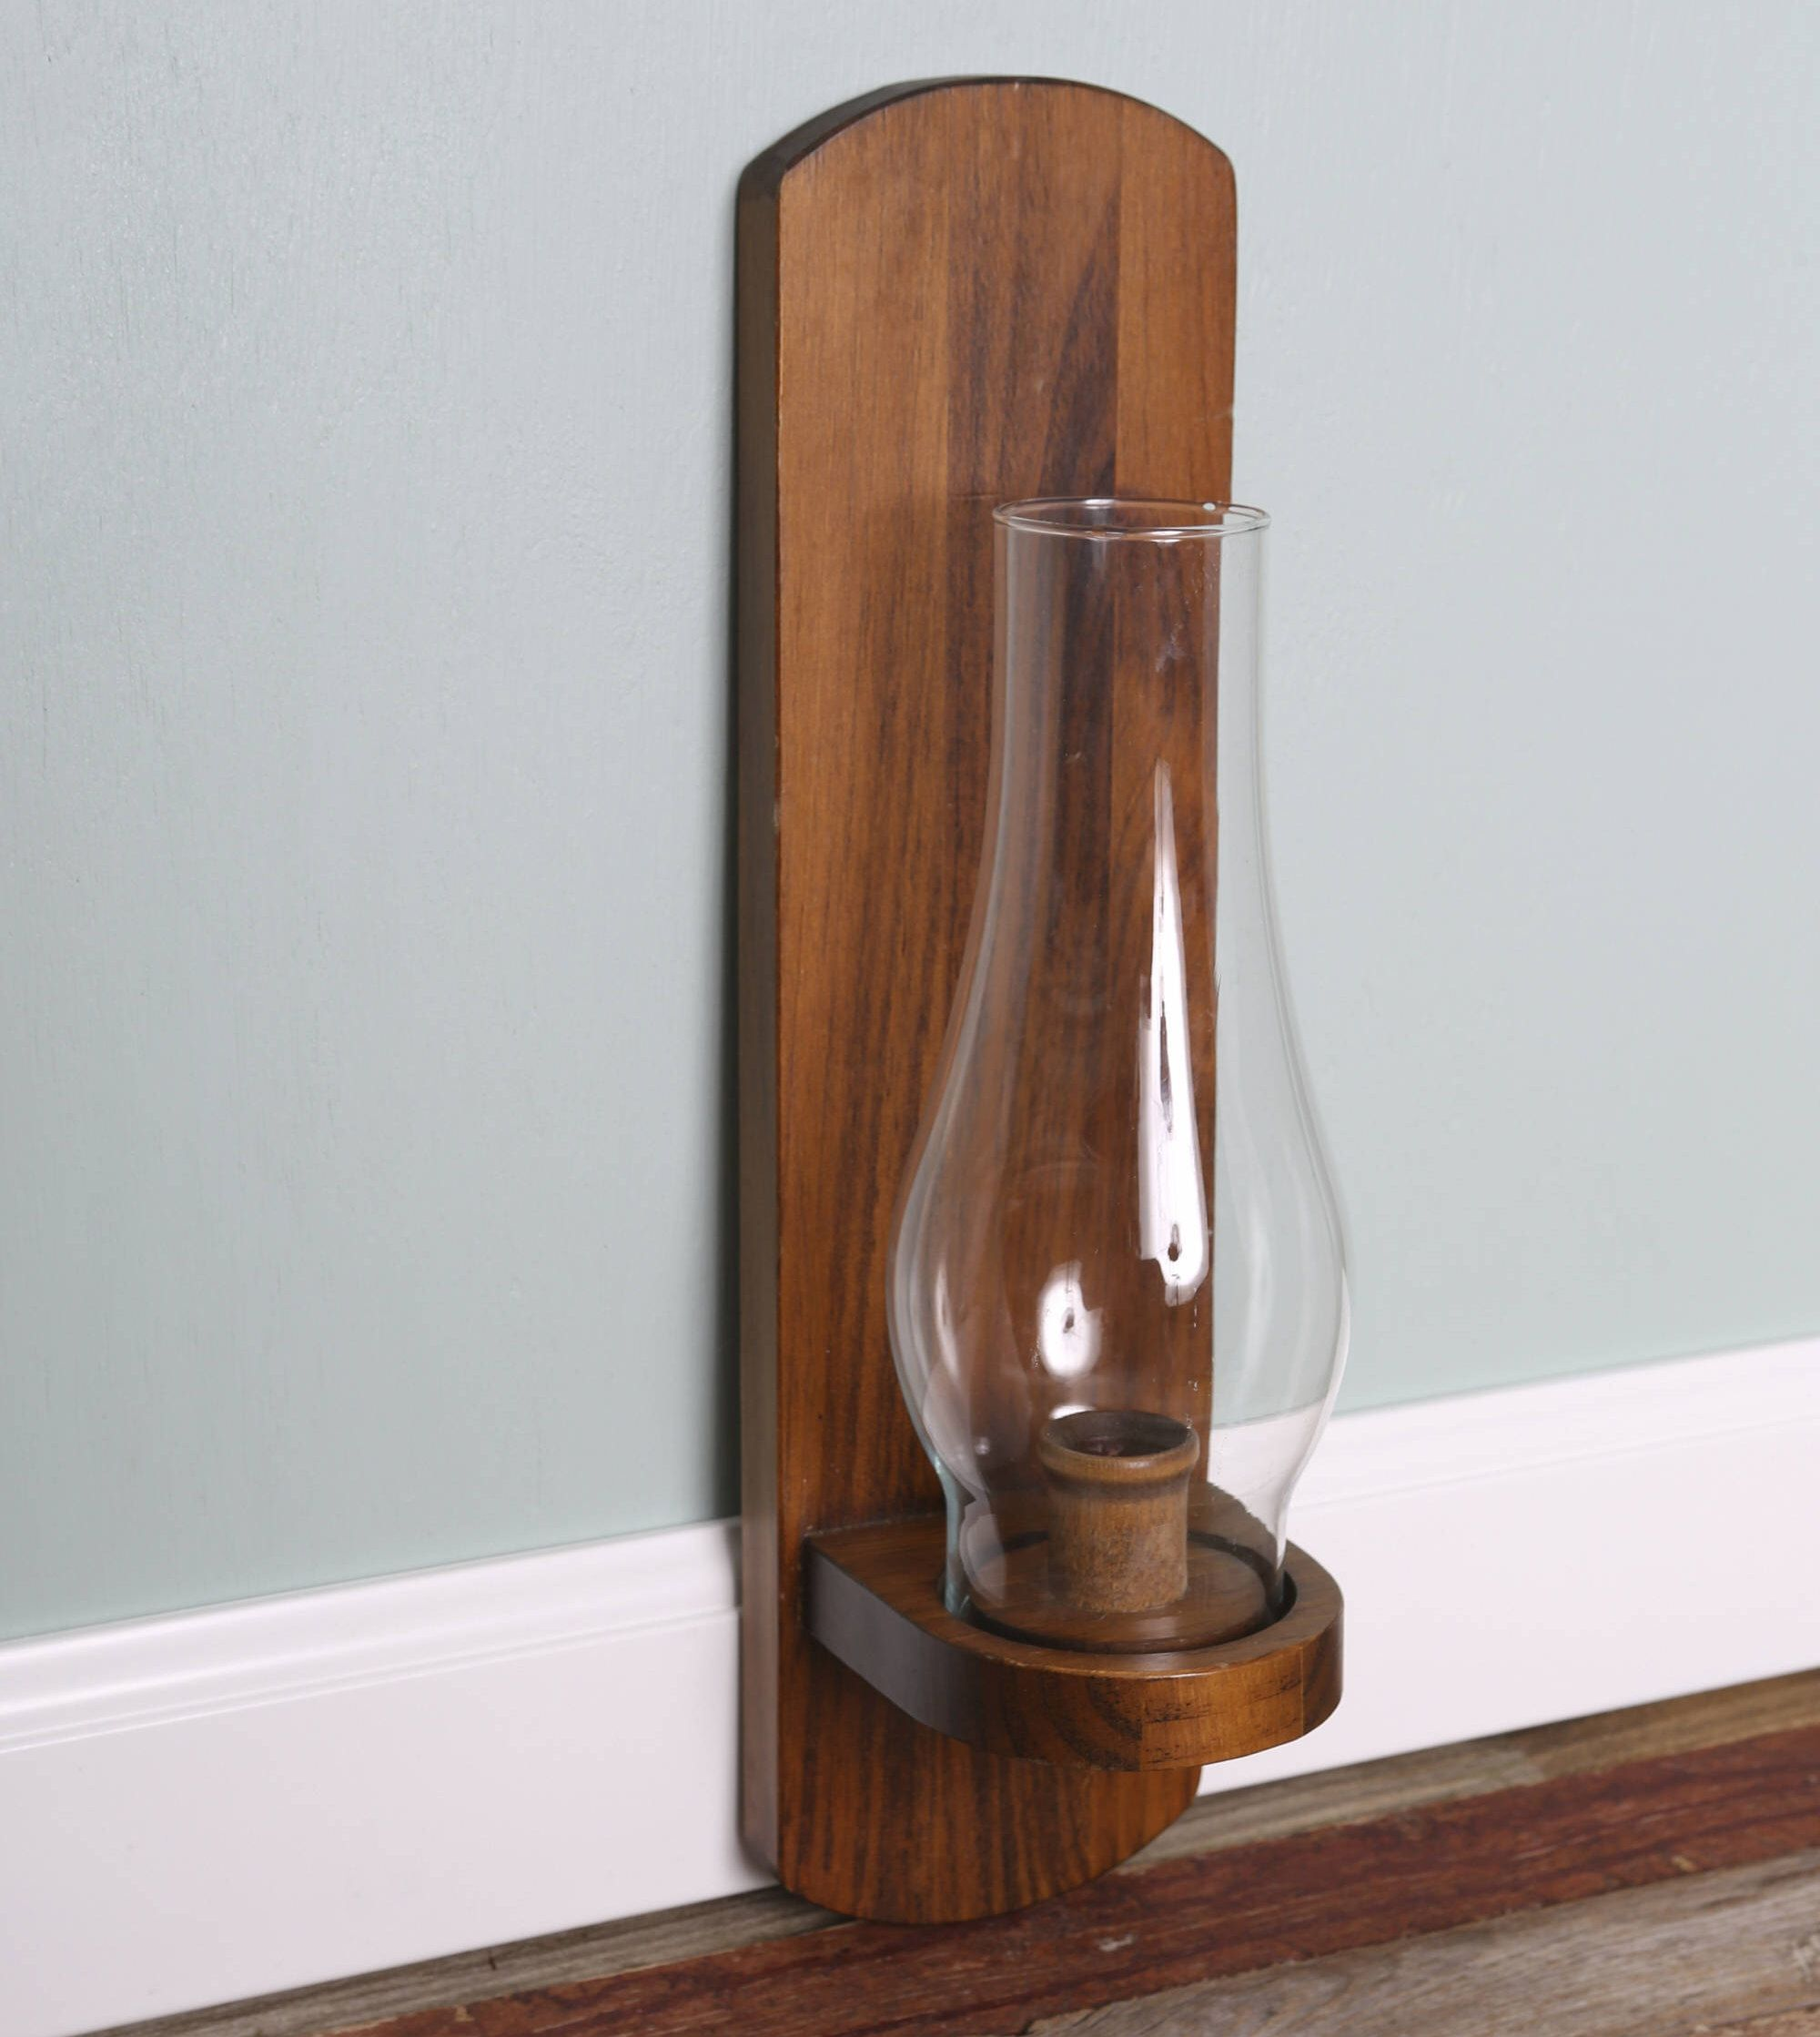 Vintage Wood Wall Tall Candle Holder-Taper Colonial Wall ... on Vintage Wall Sconce Candle Holder Decorating Ideas id=80349